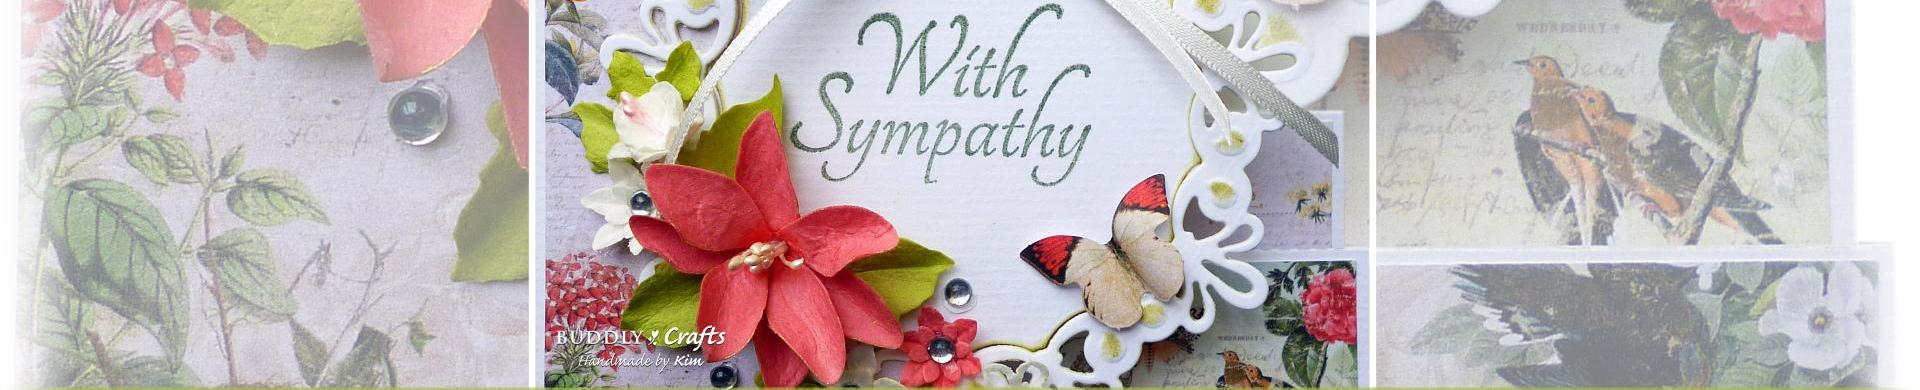 Handmade Die Cut Flowers for Sympathy Cards